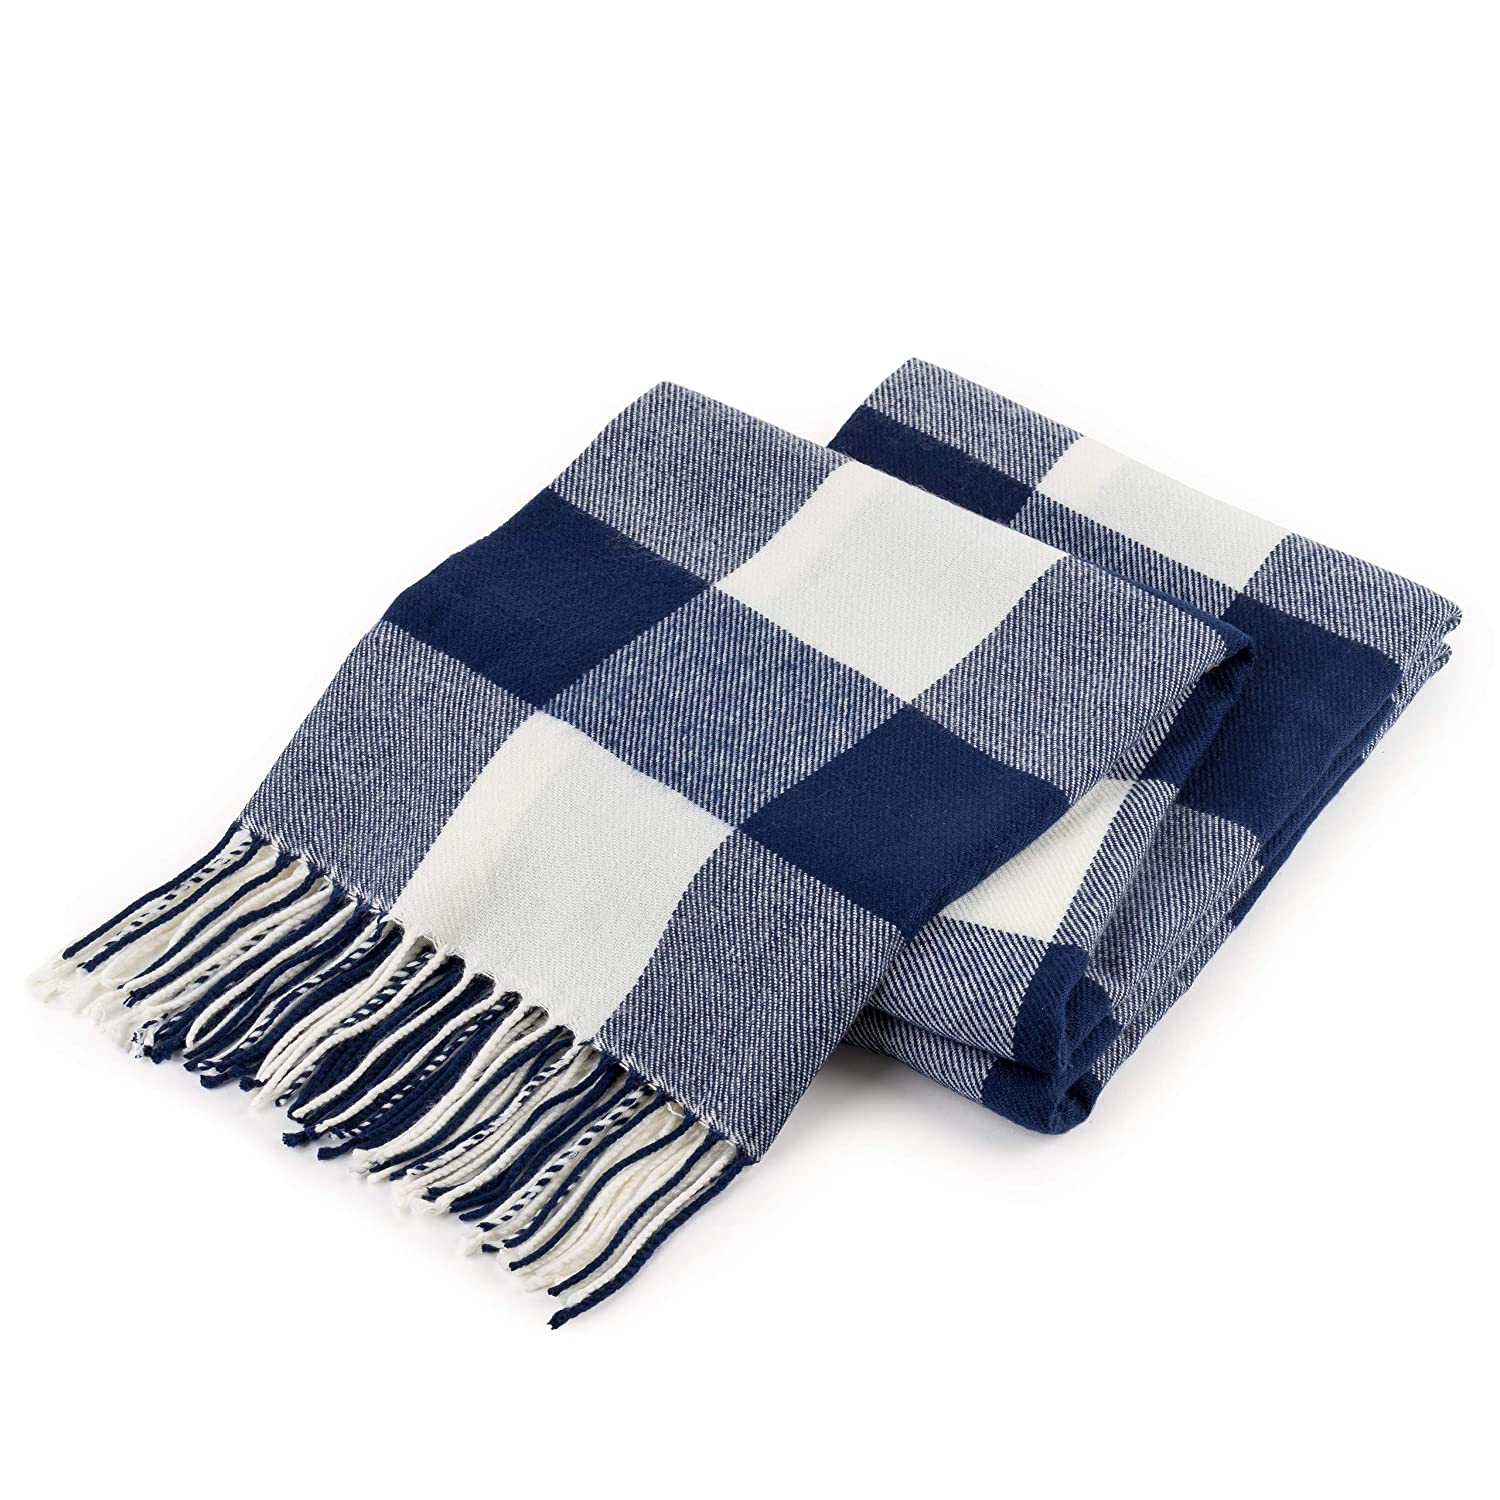 """Good MANORS Buffalo Check Plaid Throw Blanket, Ultra Lightweight for Summer, Modern Farmhouse Decor for Couch, Bed, Living Room, Outdoor, Woven Soft Faux Cashmere, 50"""" x 60"""", Navy Blue & Off-White"""